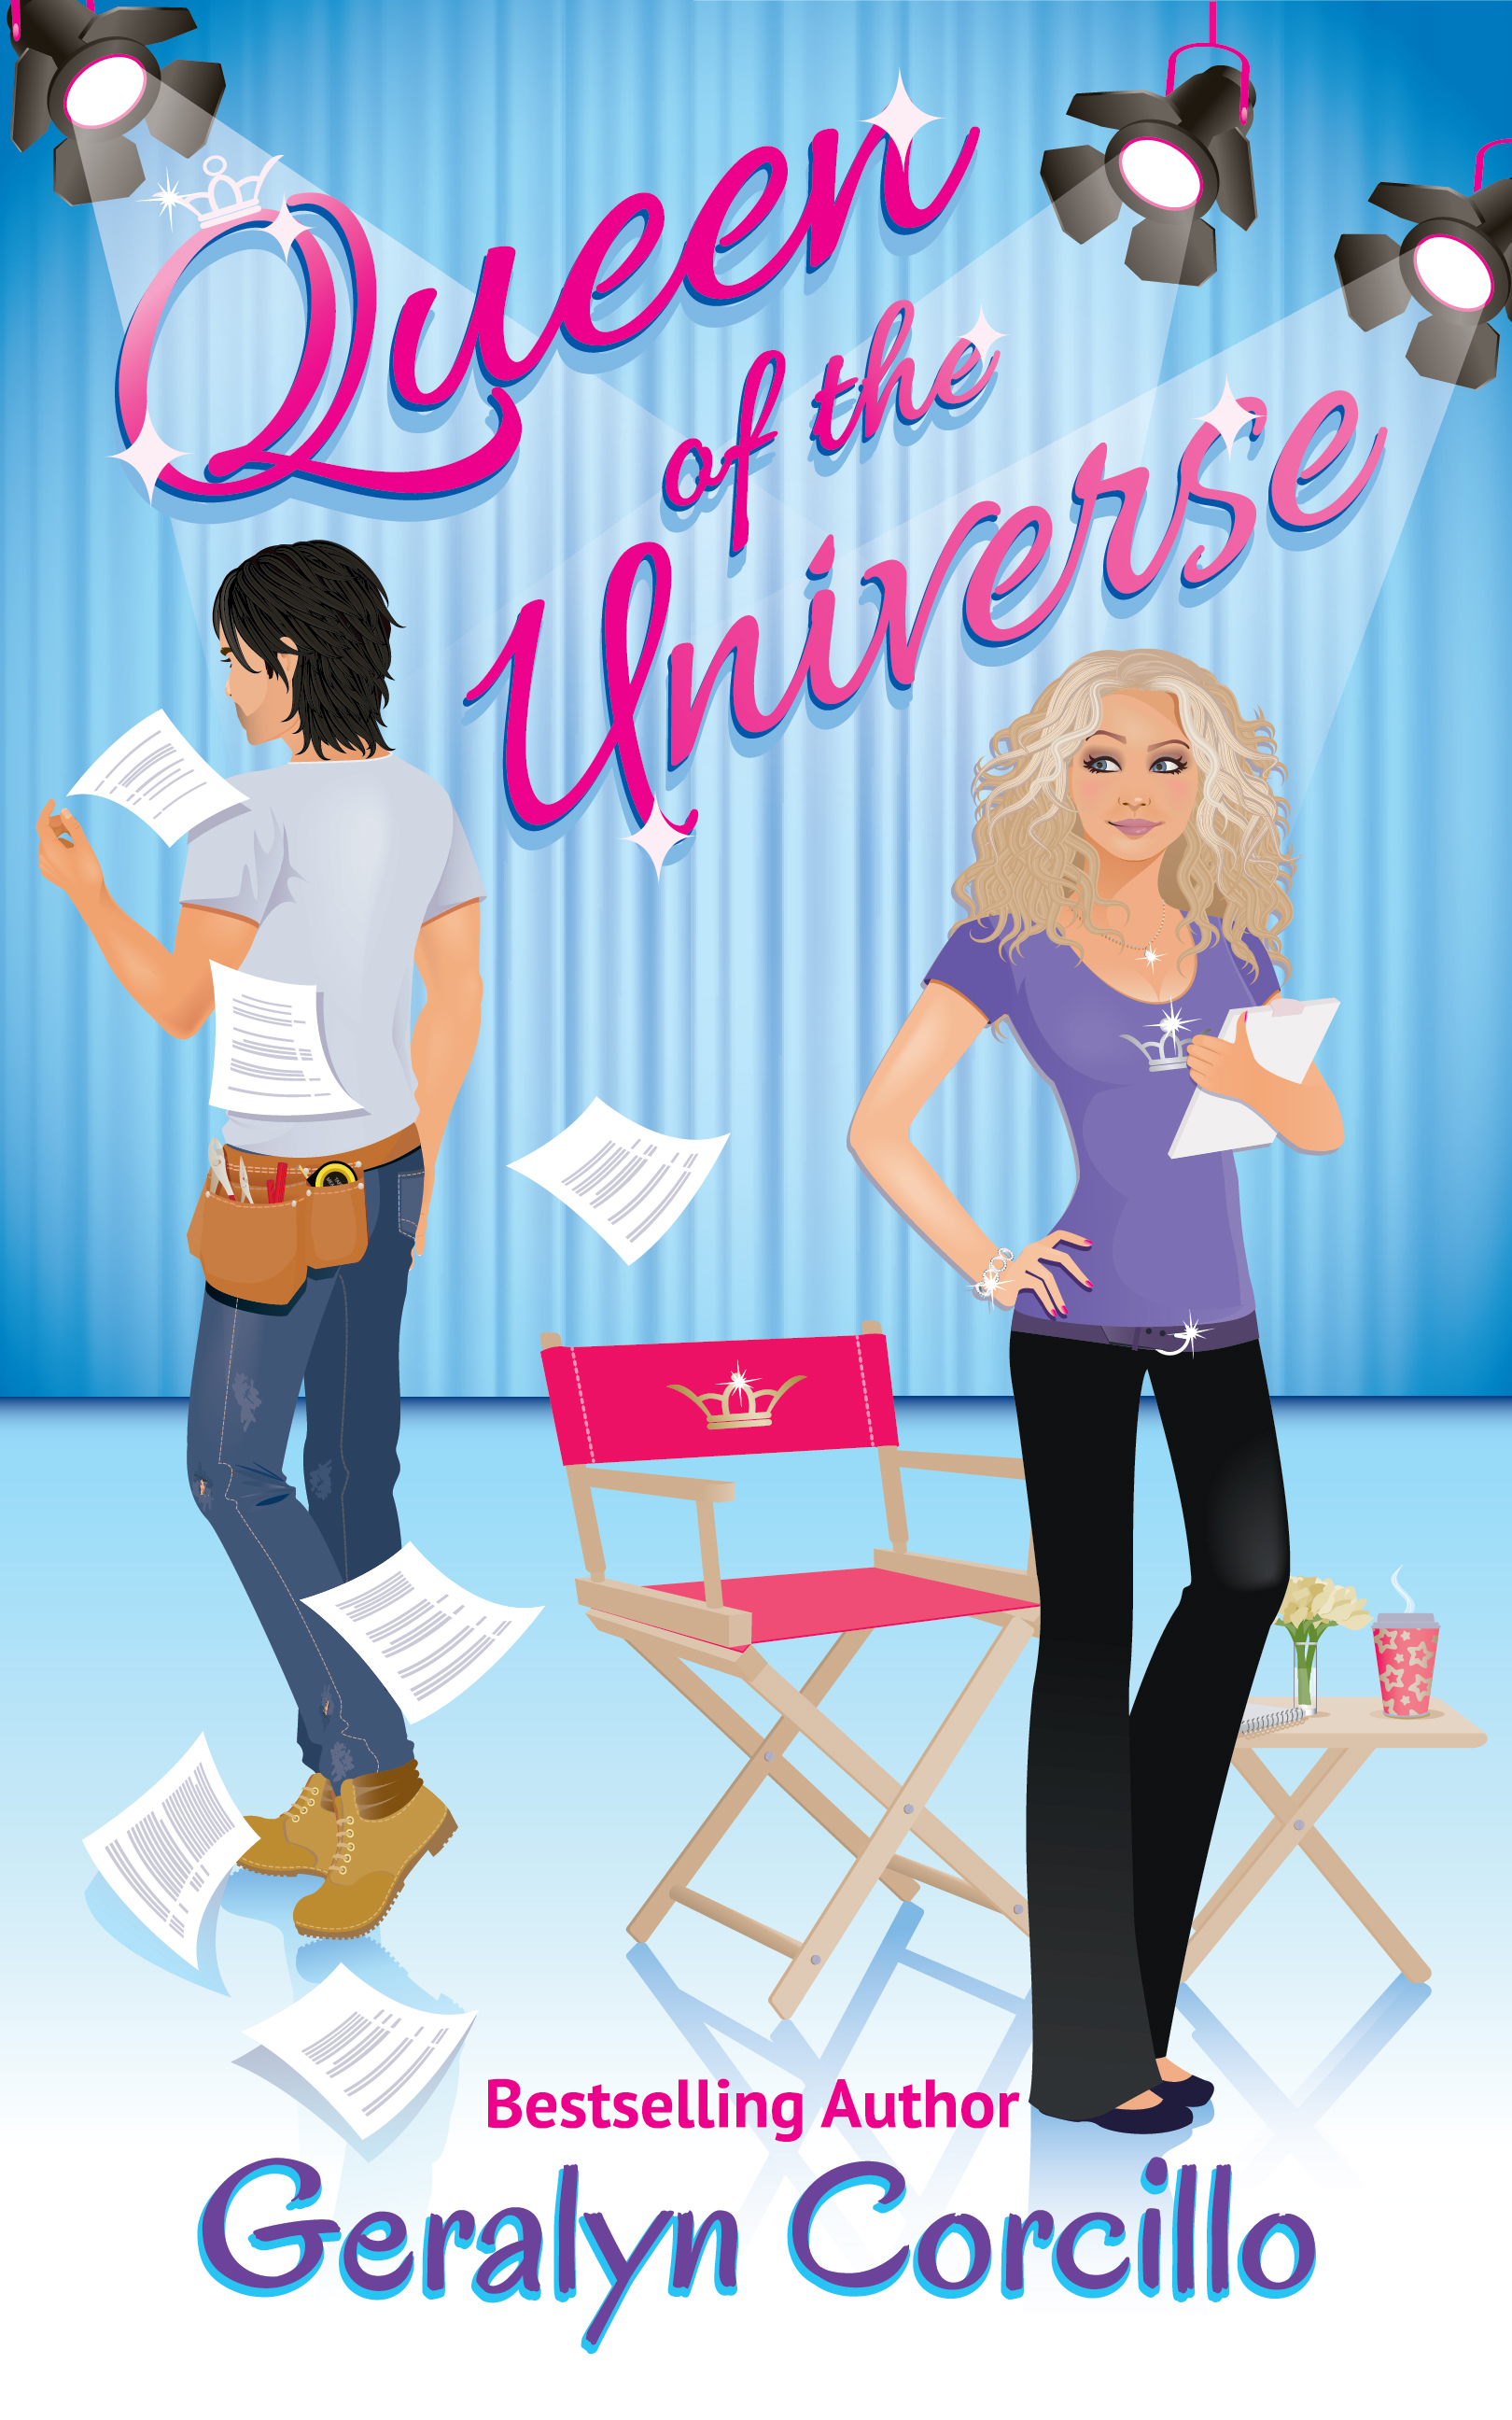 queen-of-the-universecover